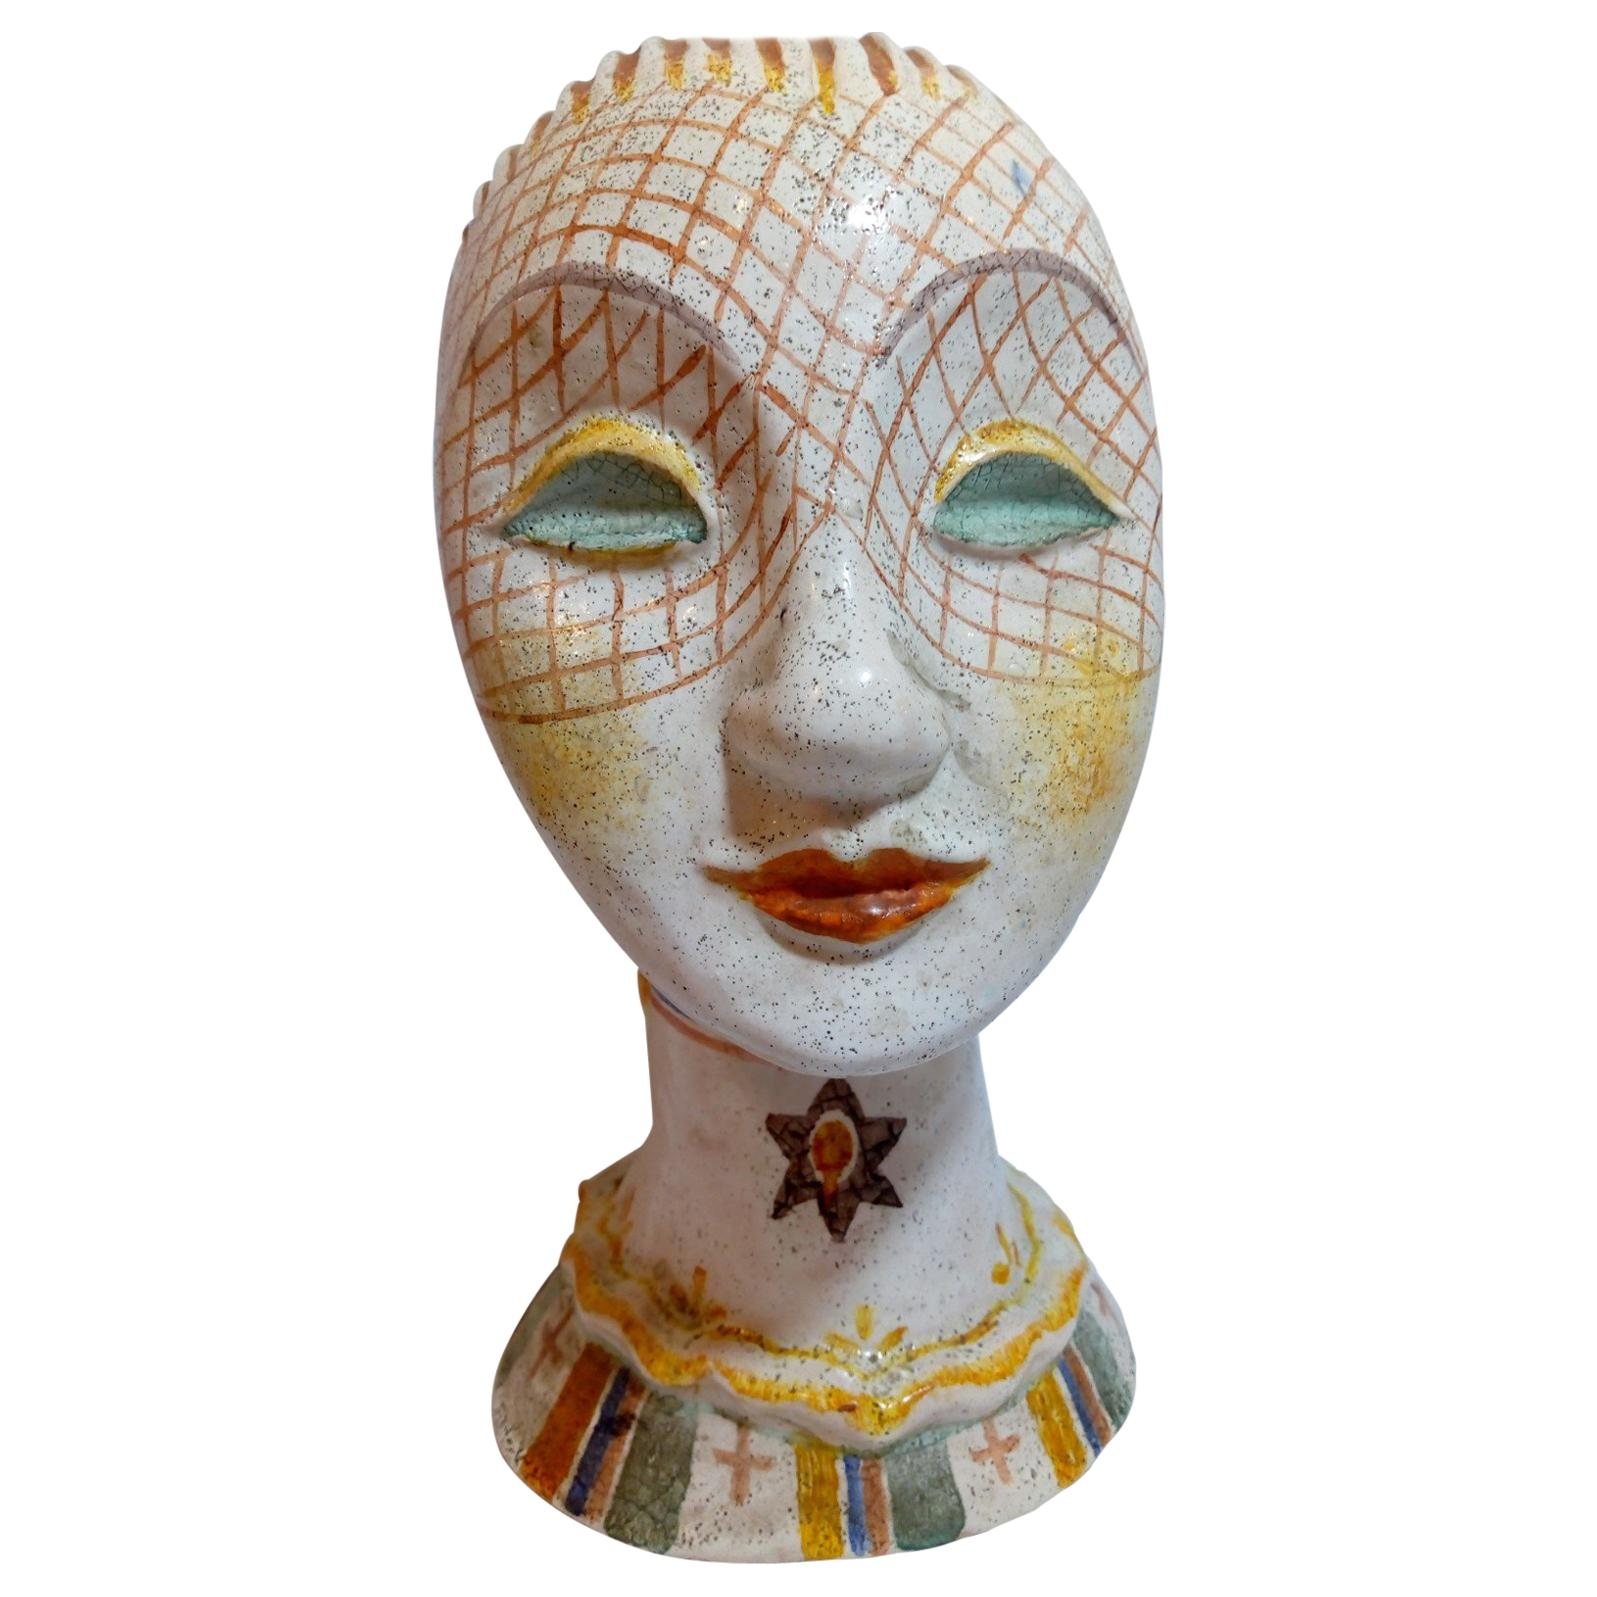 Glazed Ceramic Head of Woman with Painted Veil, Attributed to Vally Wieselthiel